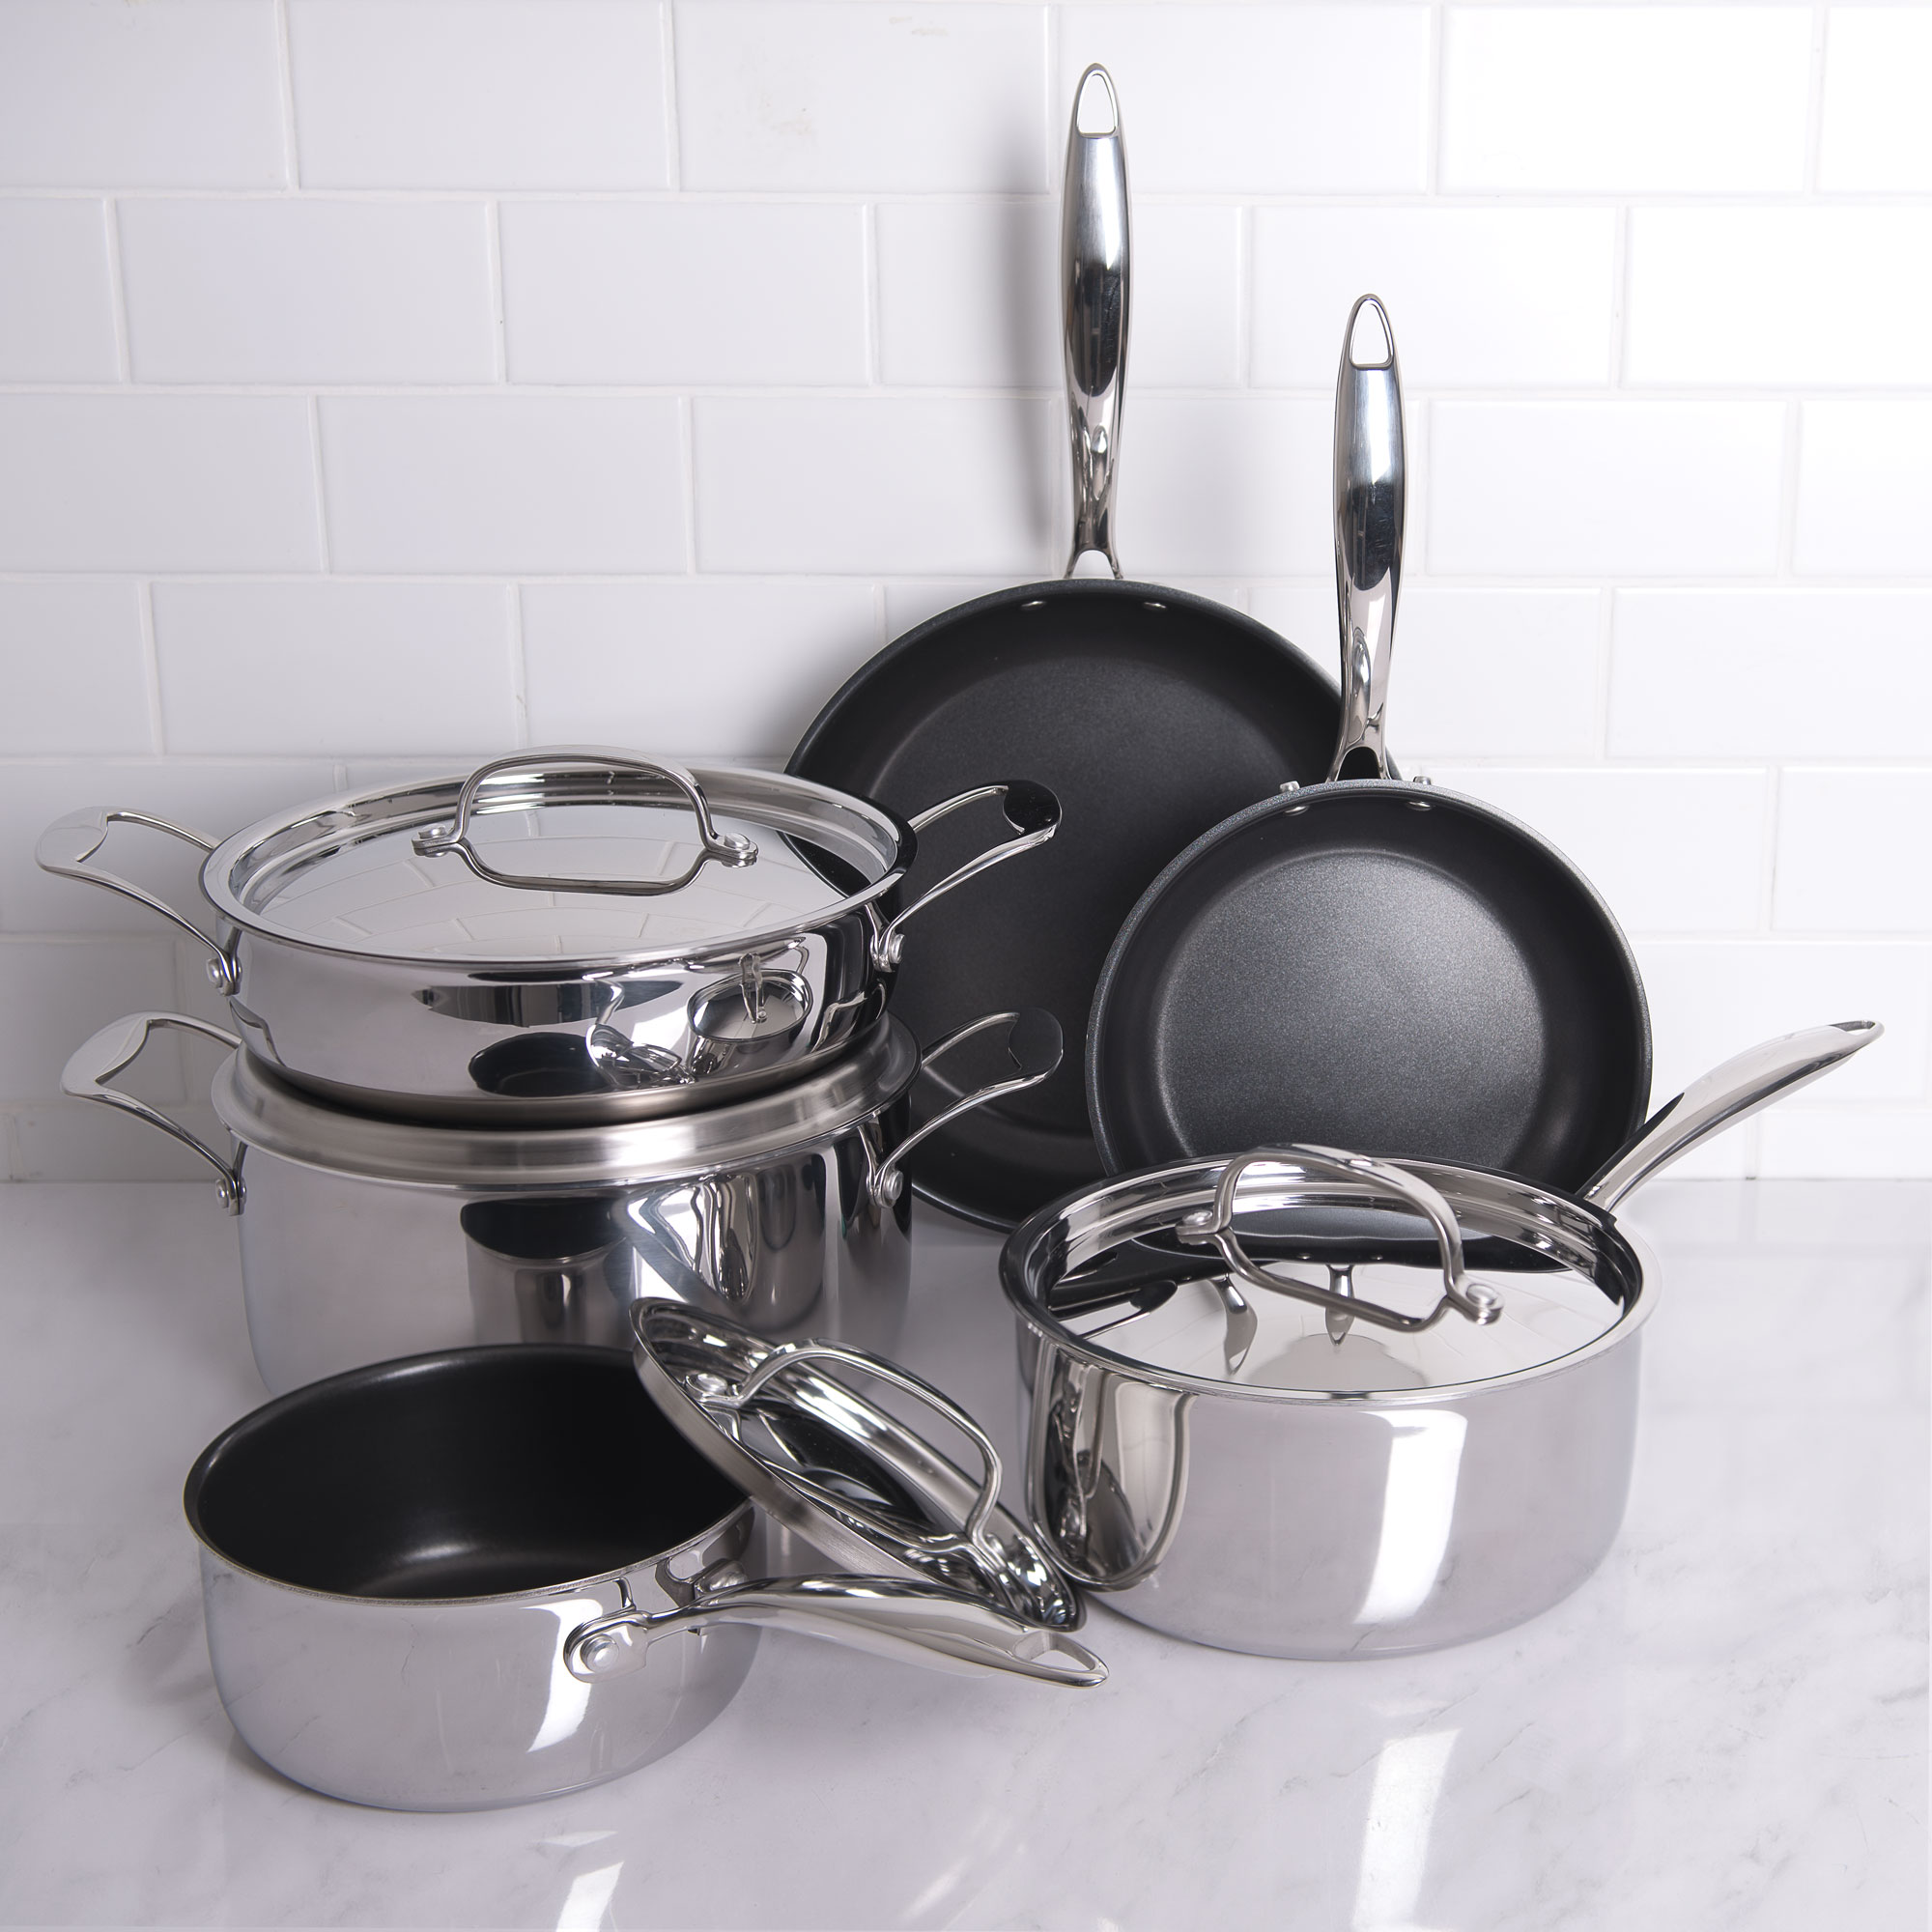 ab039e3f9b1babd49061700f2aef425e - Better Homes And Gardens Stainless Steel